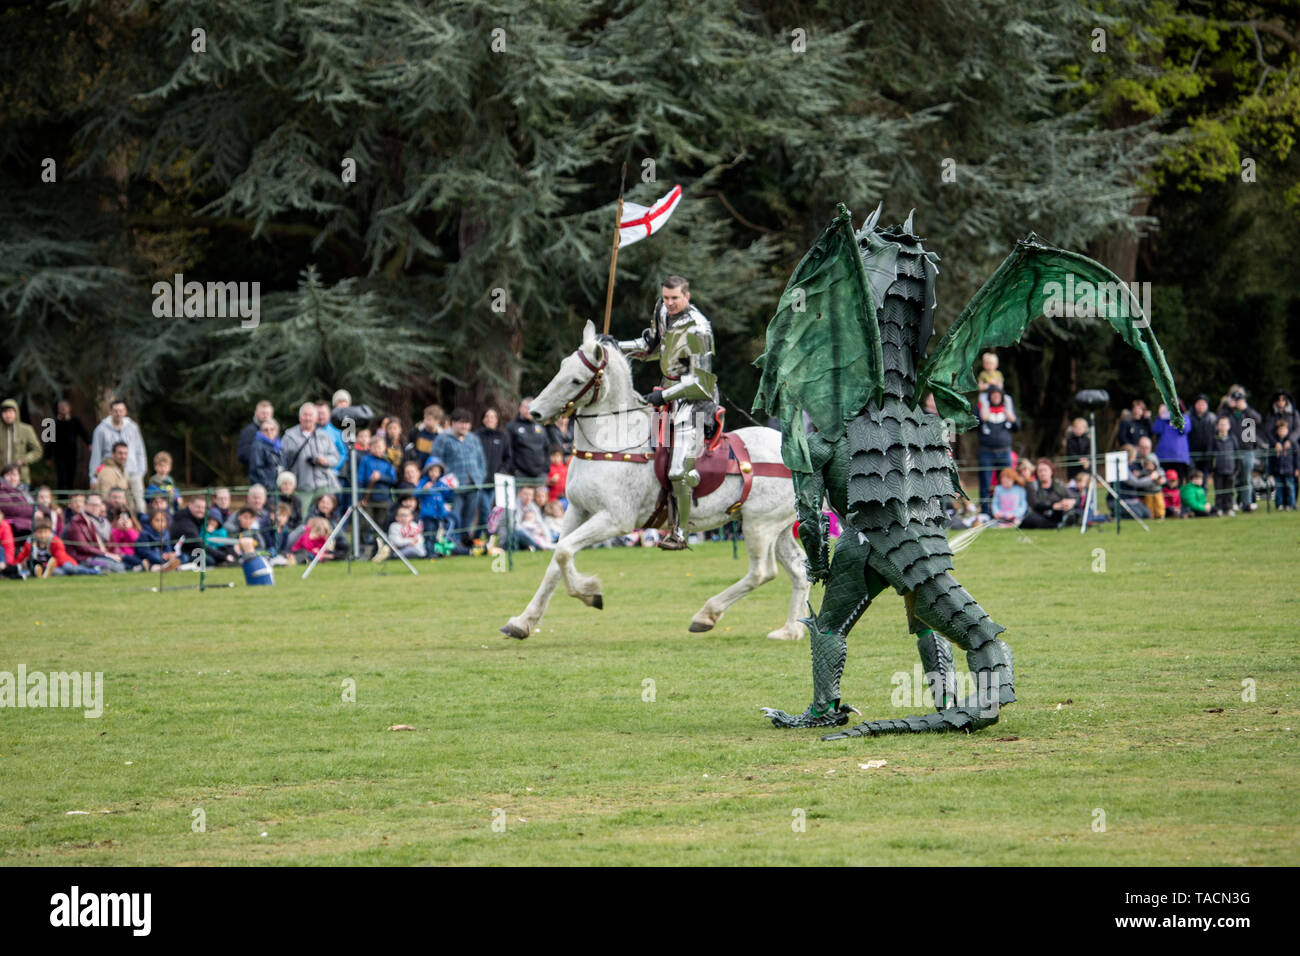 St. George and Dragon at the St George's festival at Wrest Park, Silsoe, Bedfordshire, England - Stock Image